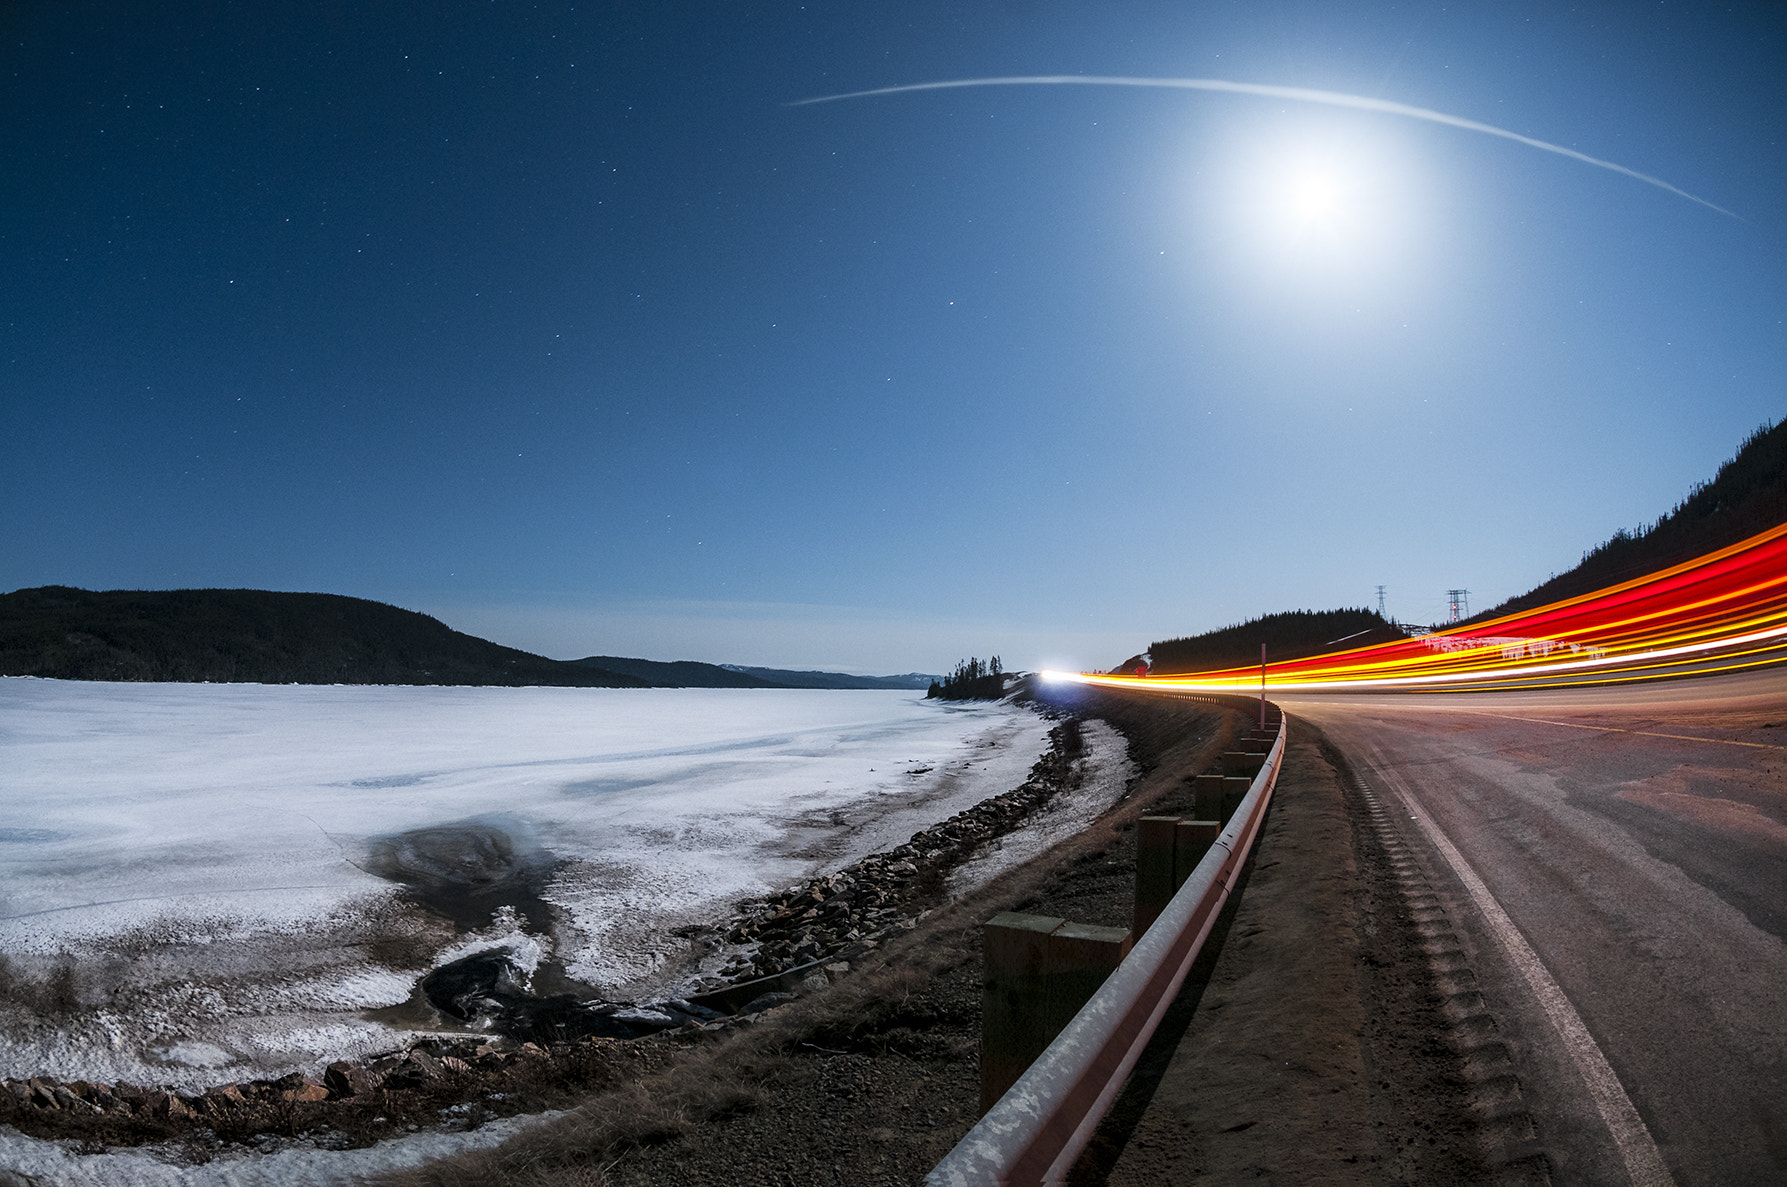 Photograph That night when the moon is full by Dérick Tremblay on 500px